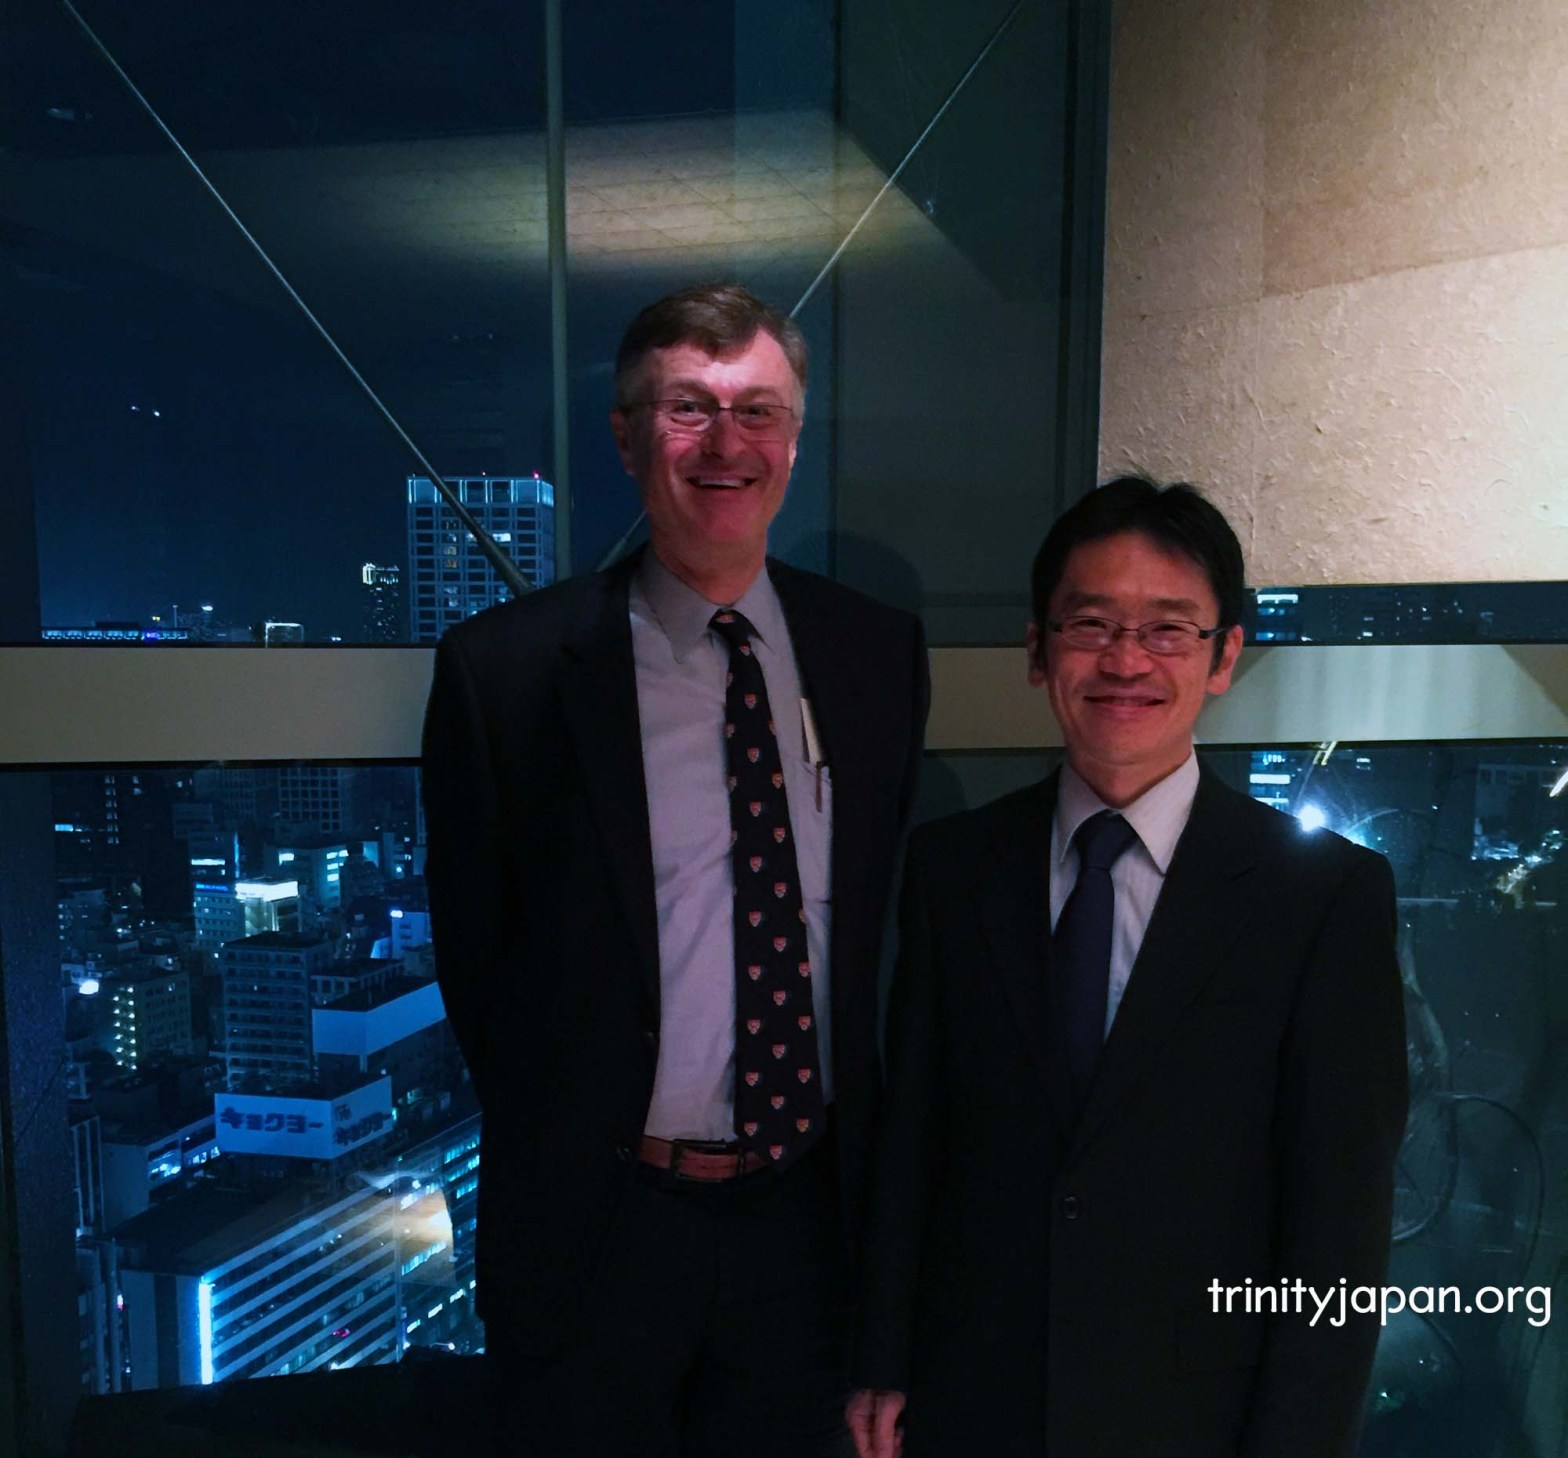 5th Trinity in Japan Society meeting in Tokyo on Friday 20 November 2015